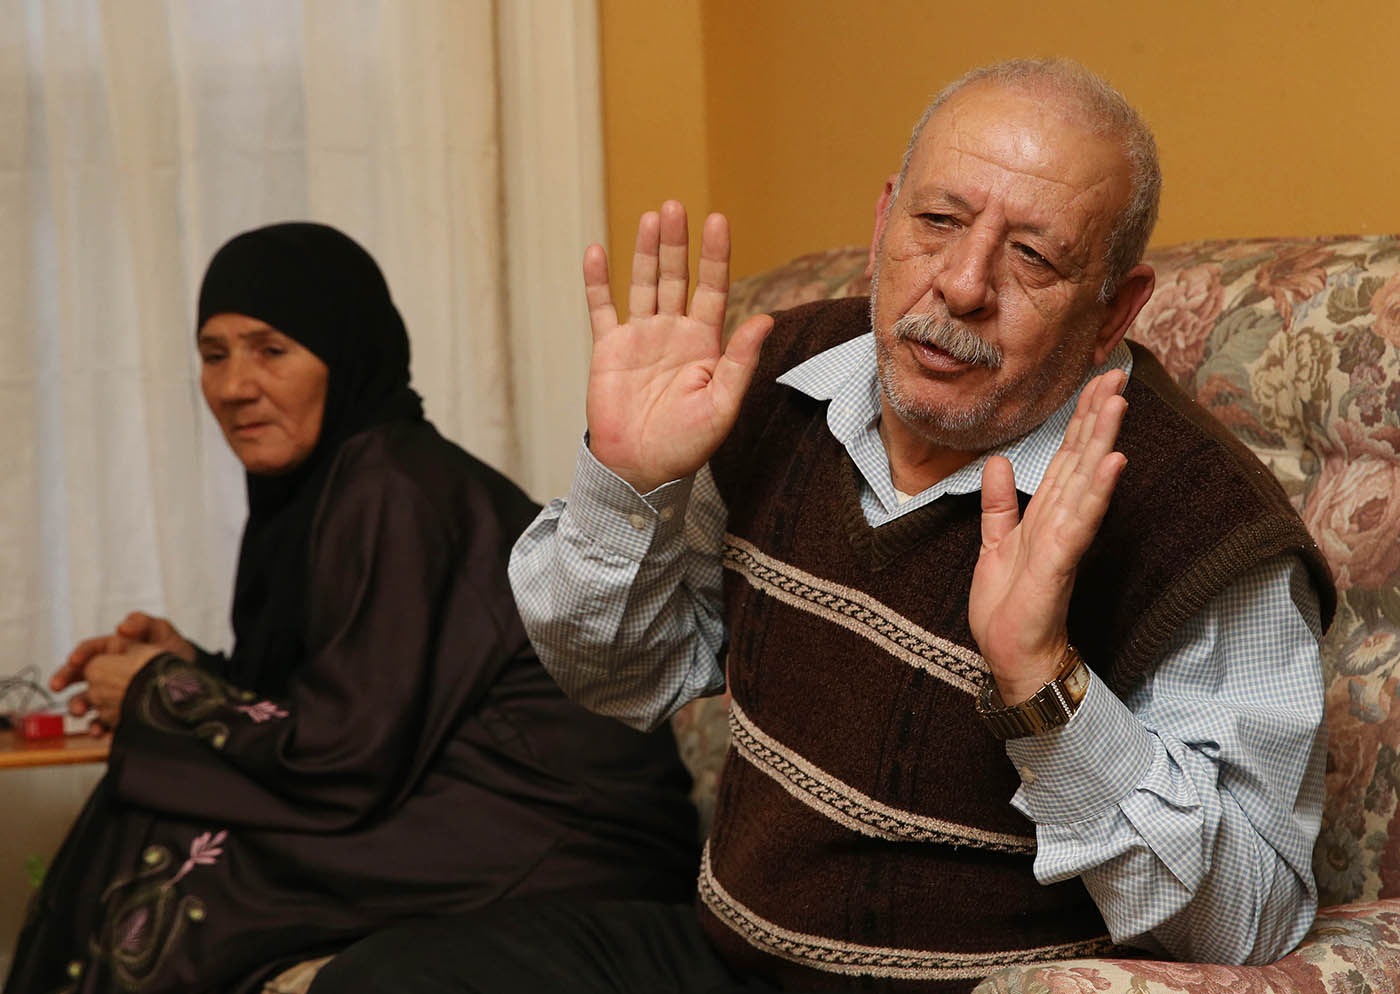 The Ay Toghlo family, refugees from Syria, are now residents on Buffalo's West side. Photo taken in their home, Wednesday, Nov. 23, 2016. From left are Eidah Al Suleiman, 54, her husband Mohammed Ay Toghlo, 67. They talk about how they came to the United States and how happy they are to be here. Husband and wife arrived on August 24 and their son arrived on September 21. (Sharon Cantillon/Buffalo News)